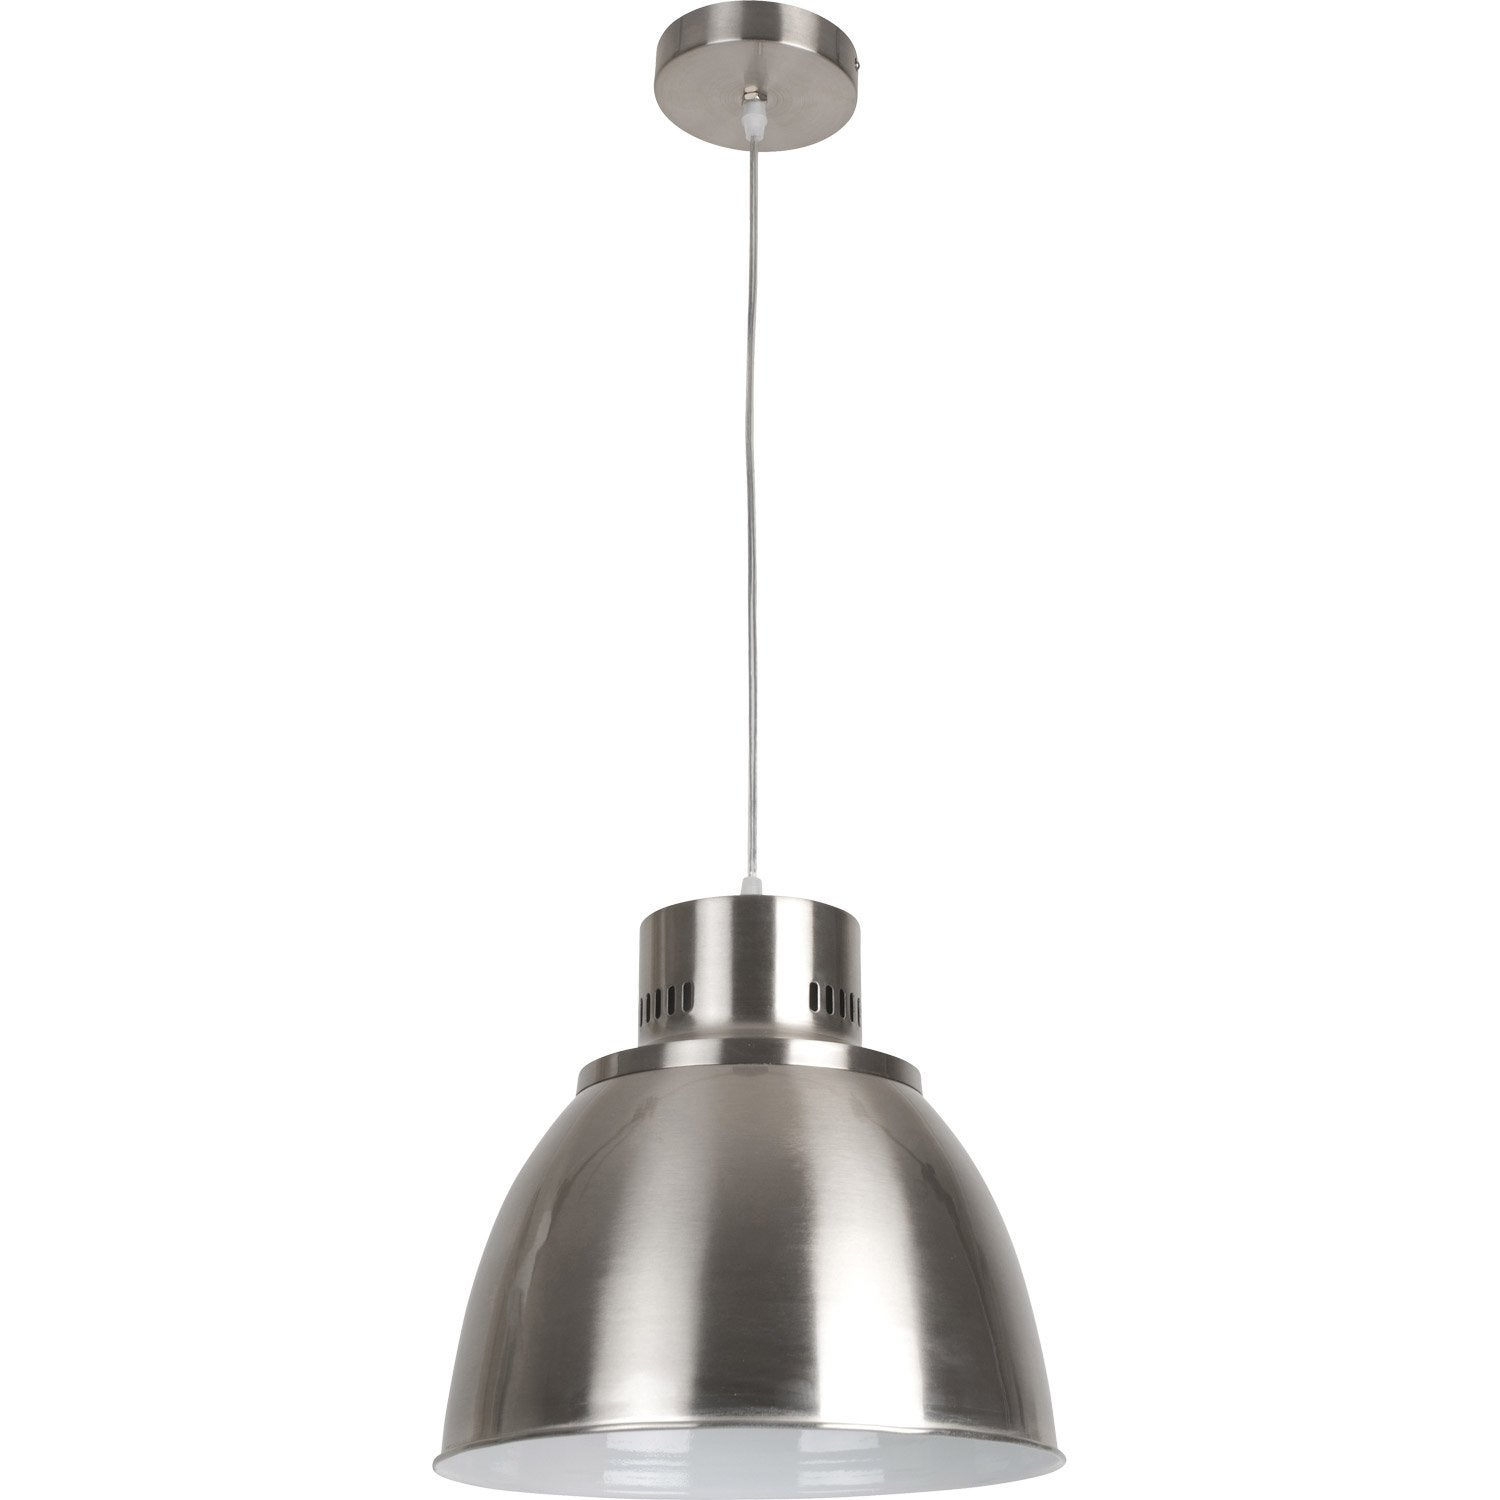 Suspension industriel soho m tal chrom 1 x 60 w corep - Suspension metal industriel ...